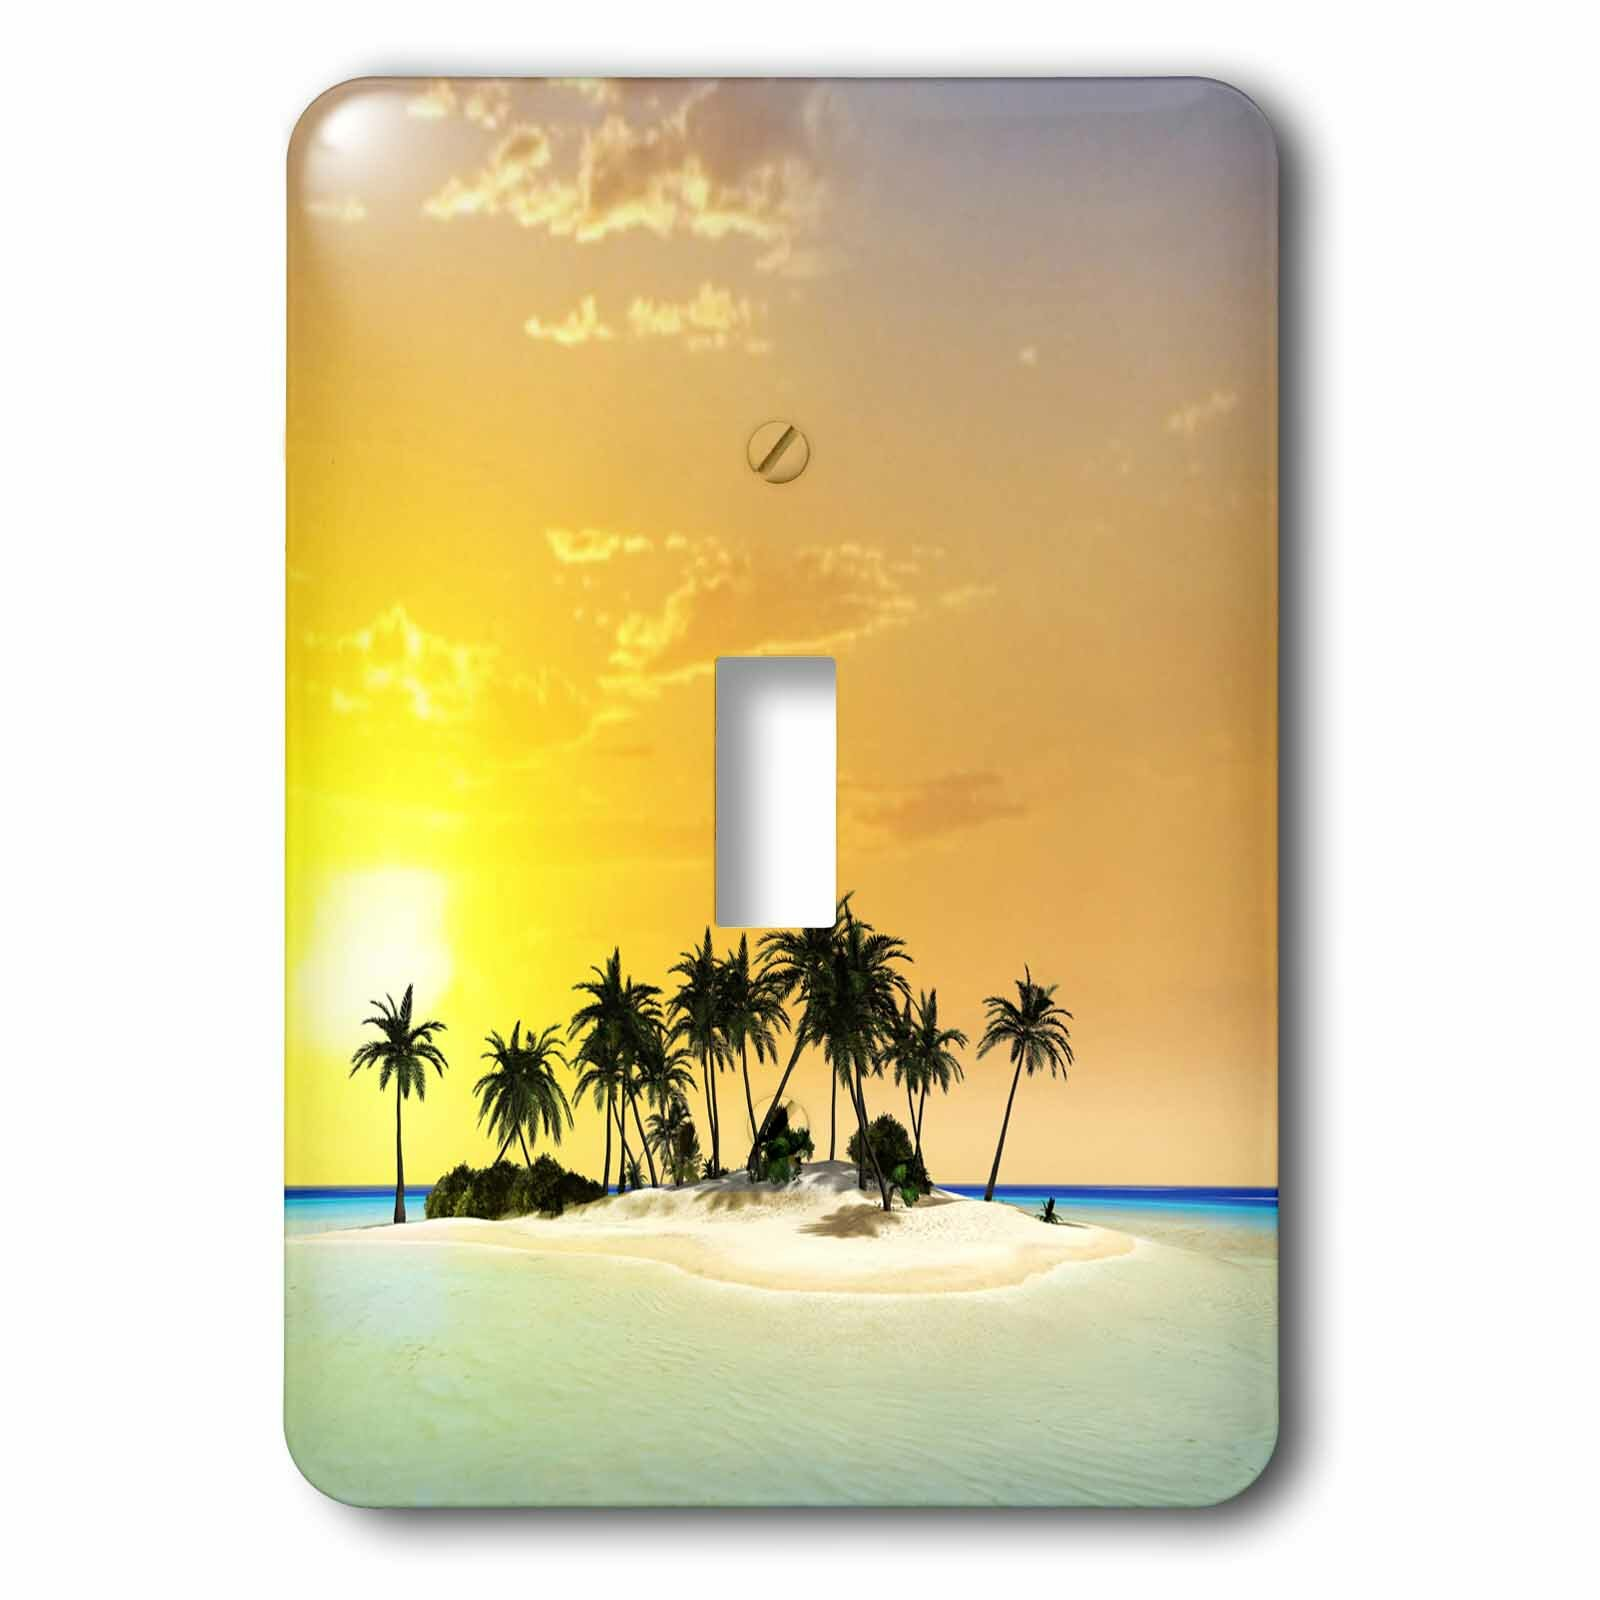 3drose The Ocean With Tropical Island 1 Gang Toggle Light Switch Wall Plate Wayfair